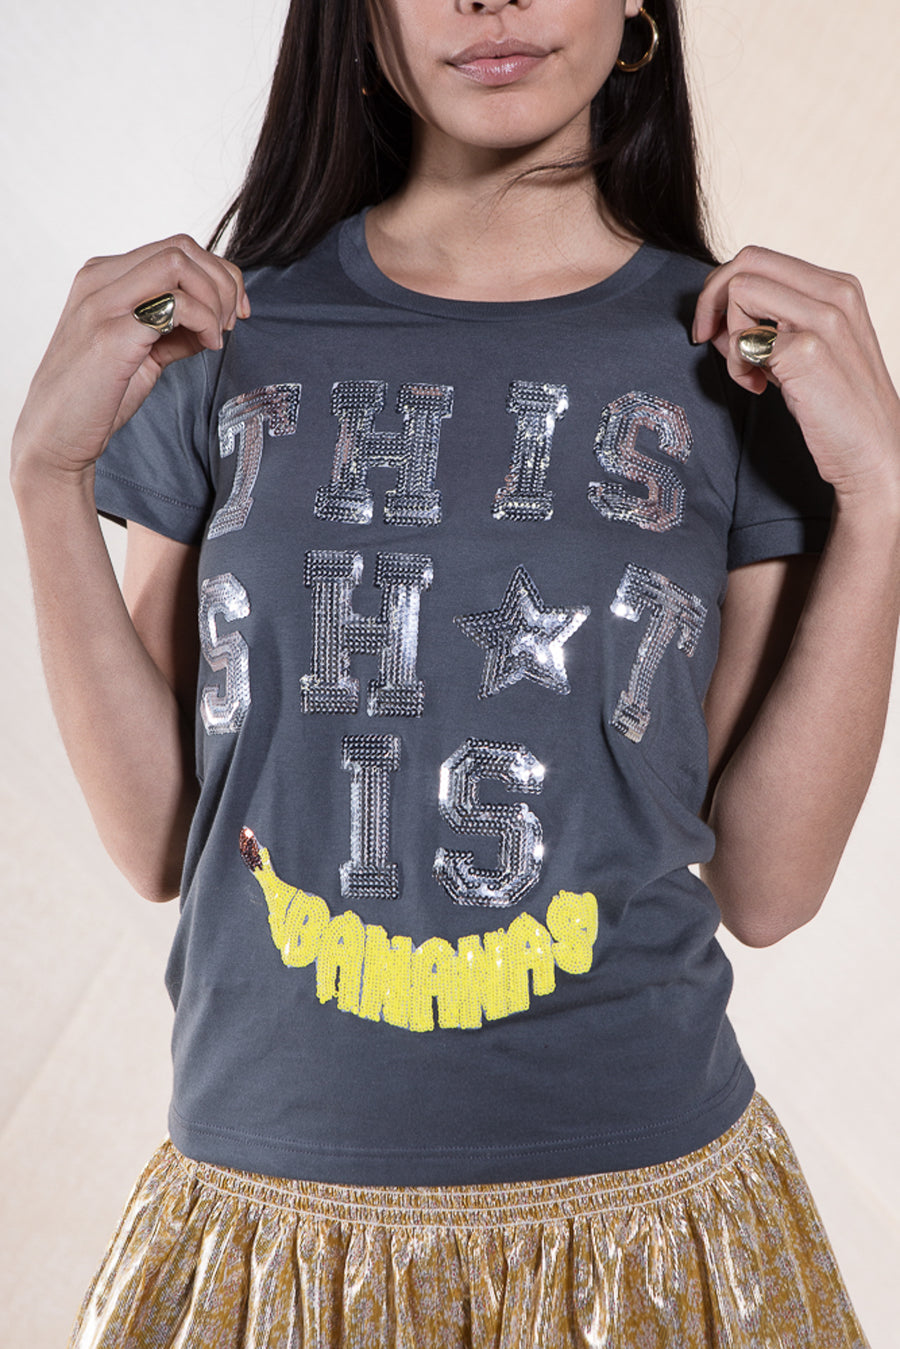 LUCY T-SHIRT BANANAS